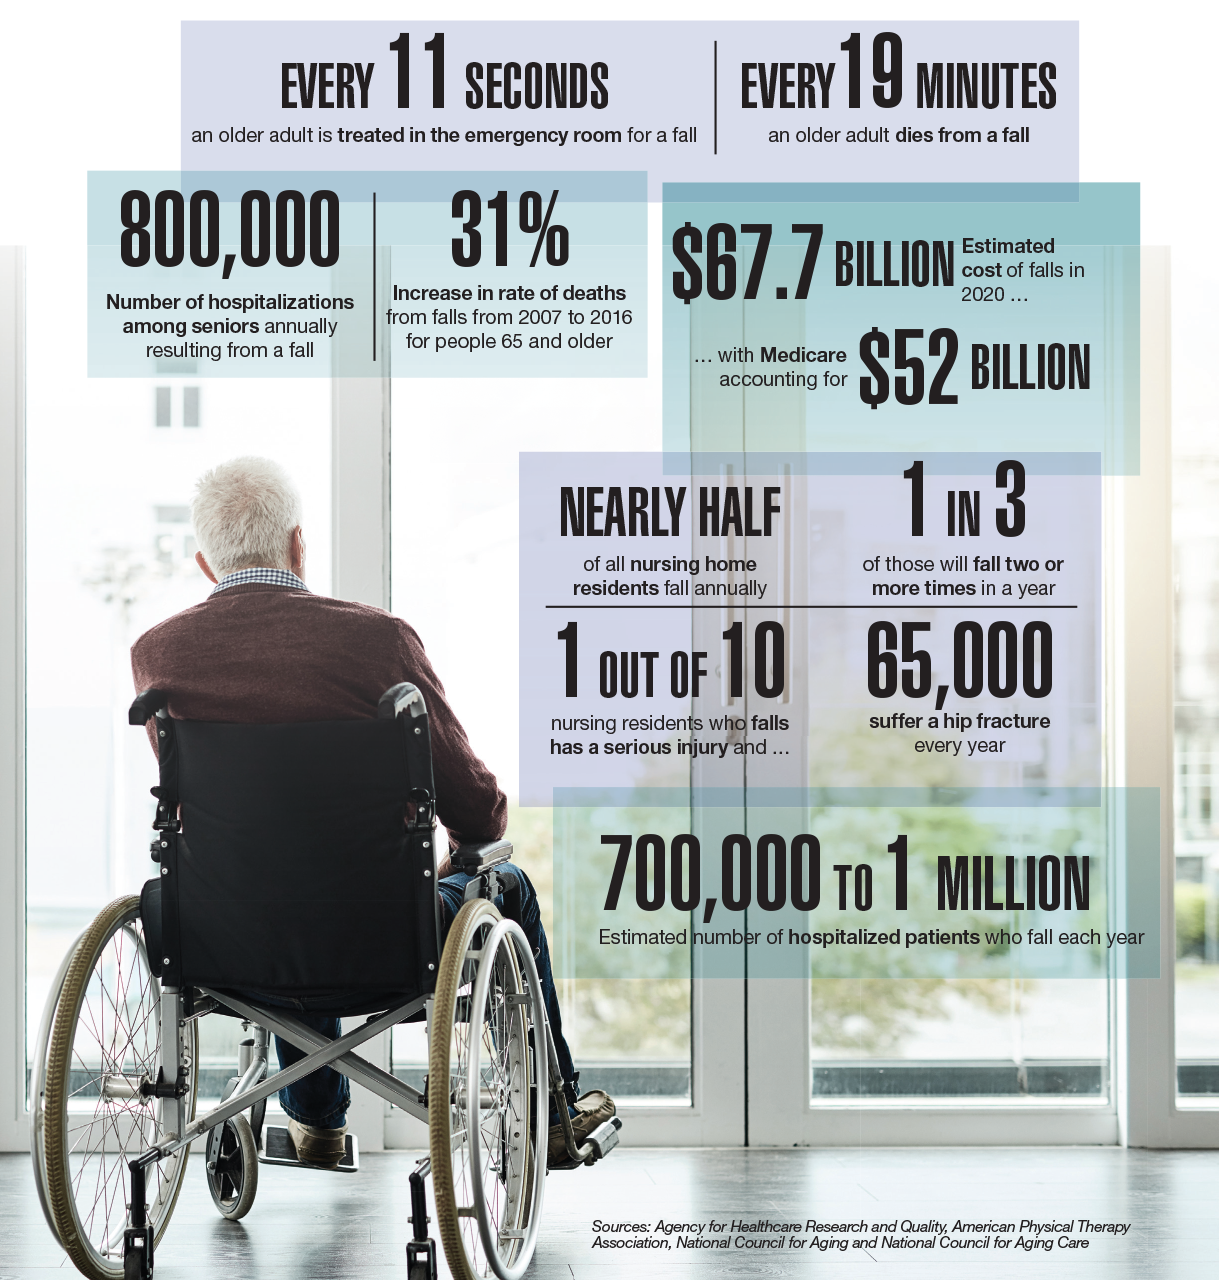 Data Points: Falls by seniors could cost Medicare $52 billion in 2020